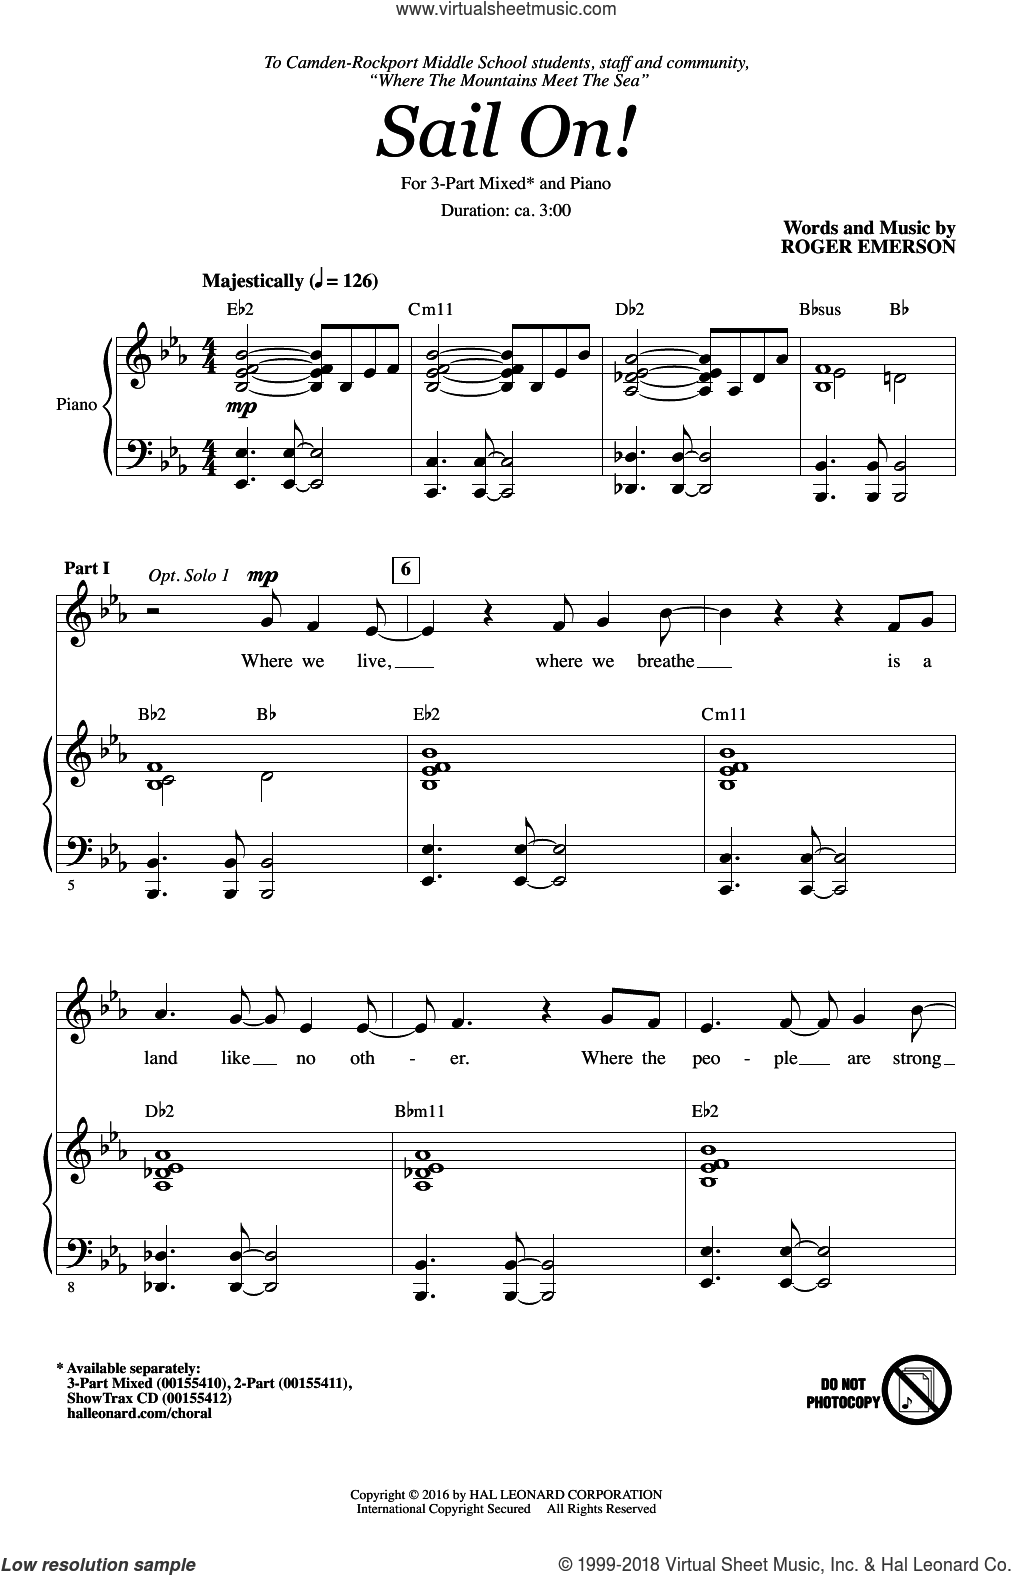 Sail On! sheet music for choir (3-Part Mixed) by Roger Emerson, intermediate skill level